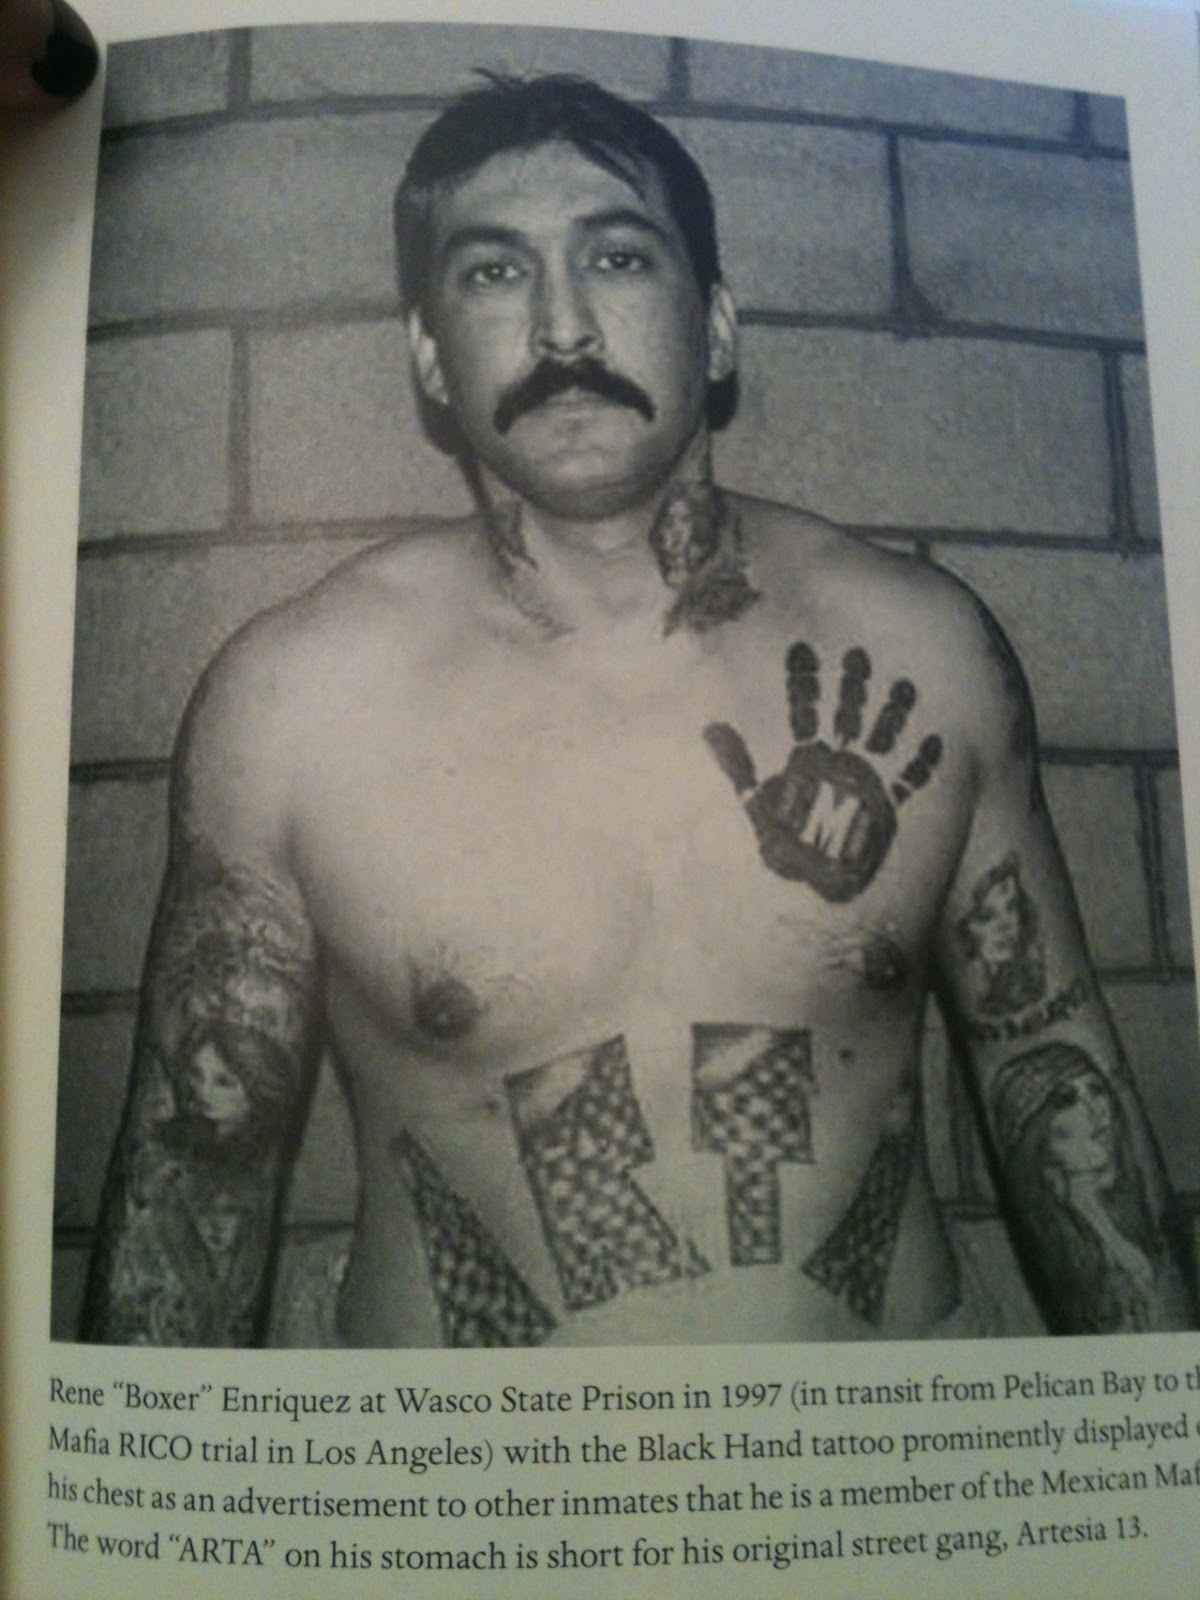 Know Gangs Gang Pictures Mexican Mafia Black Hand La Eme Tattoo